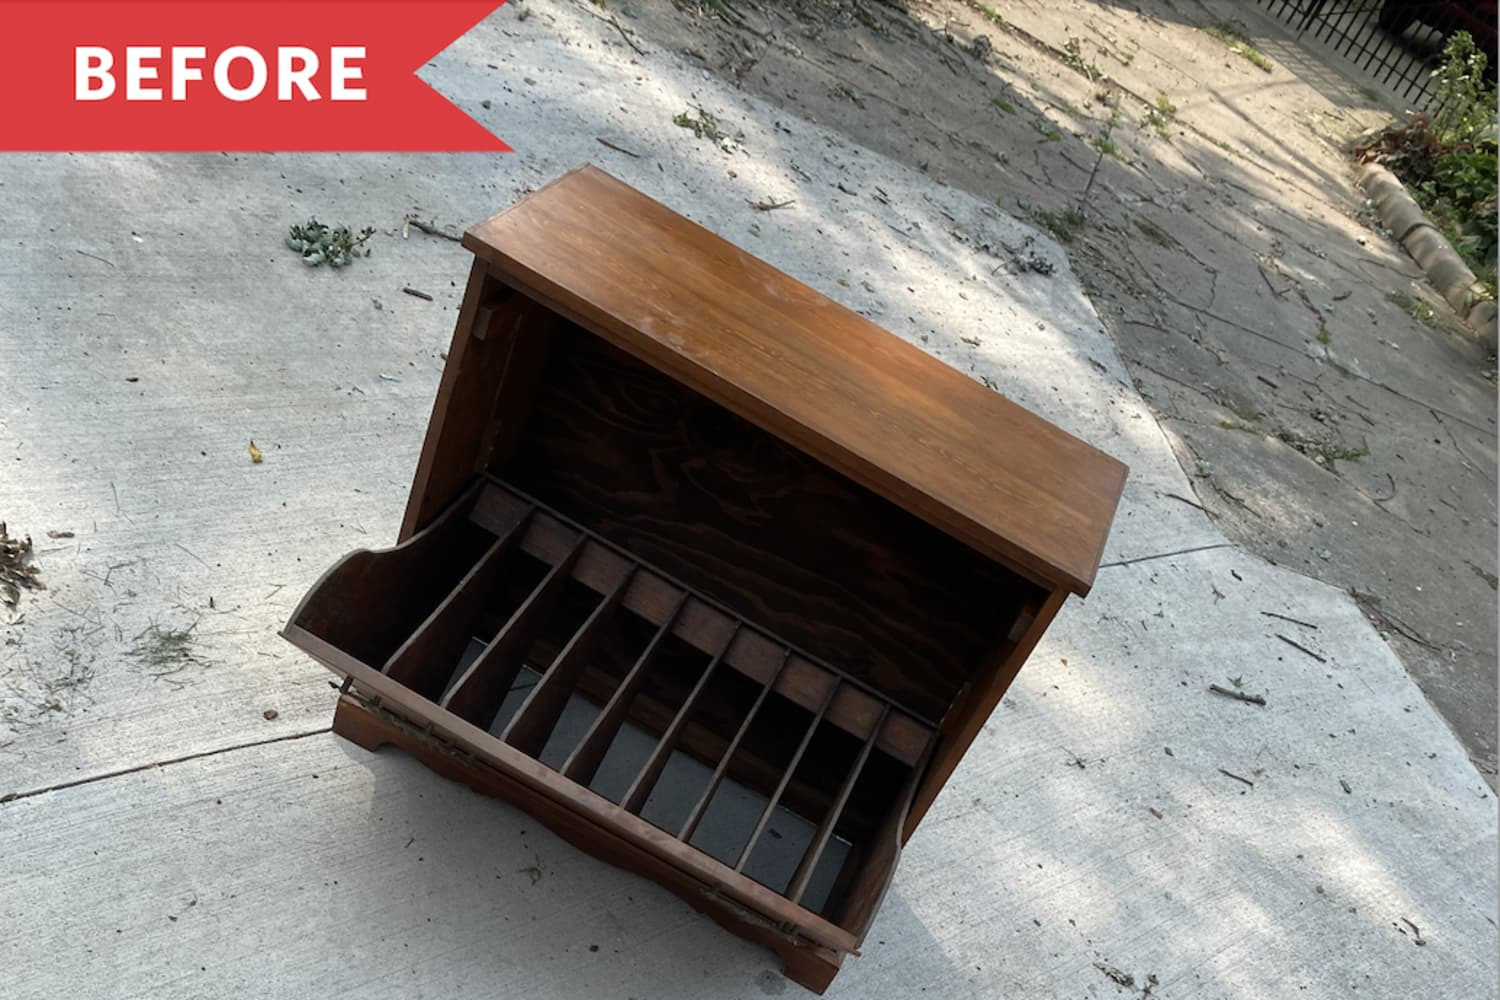 Before and After: A $40 Secondhand Cabinet Gets a Modern, Colorful Second Life